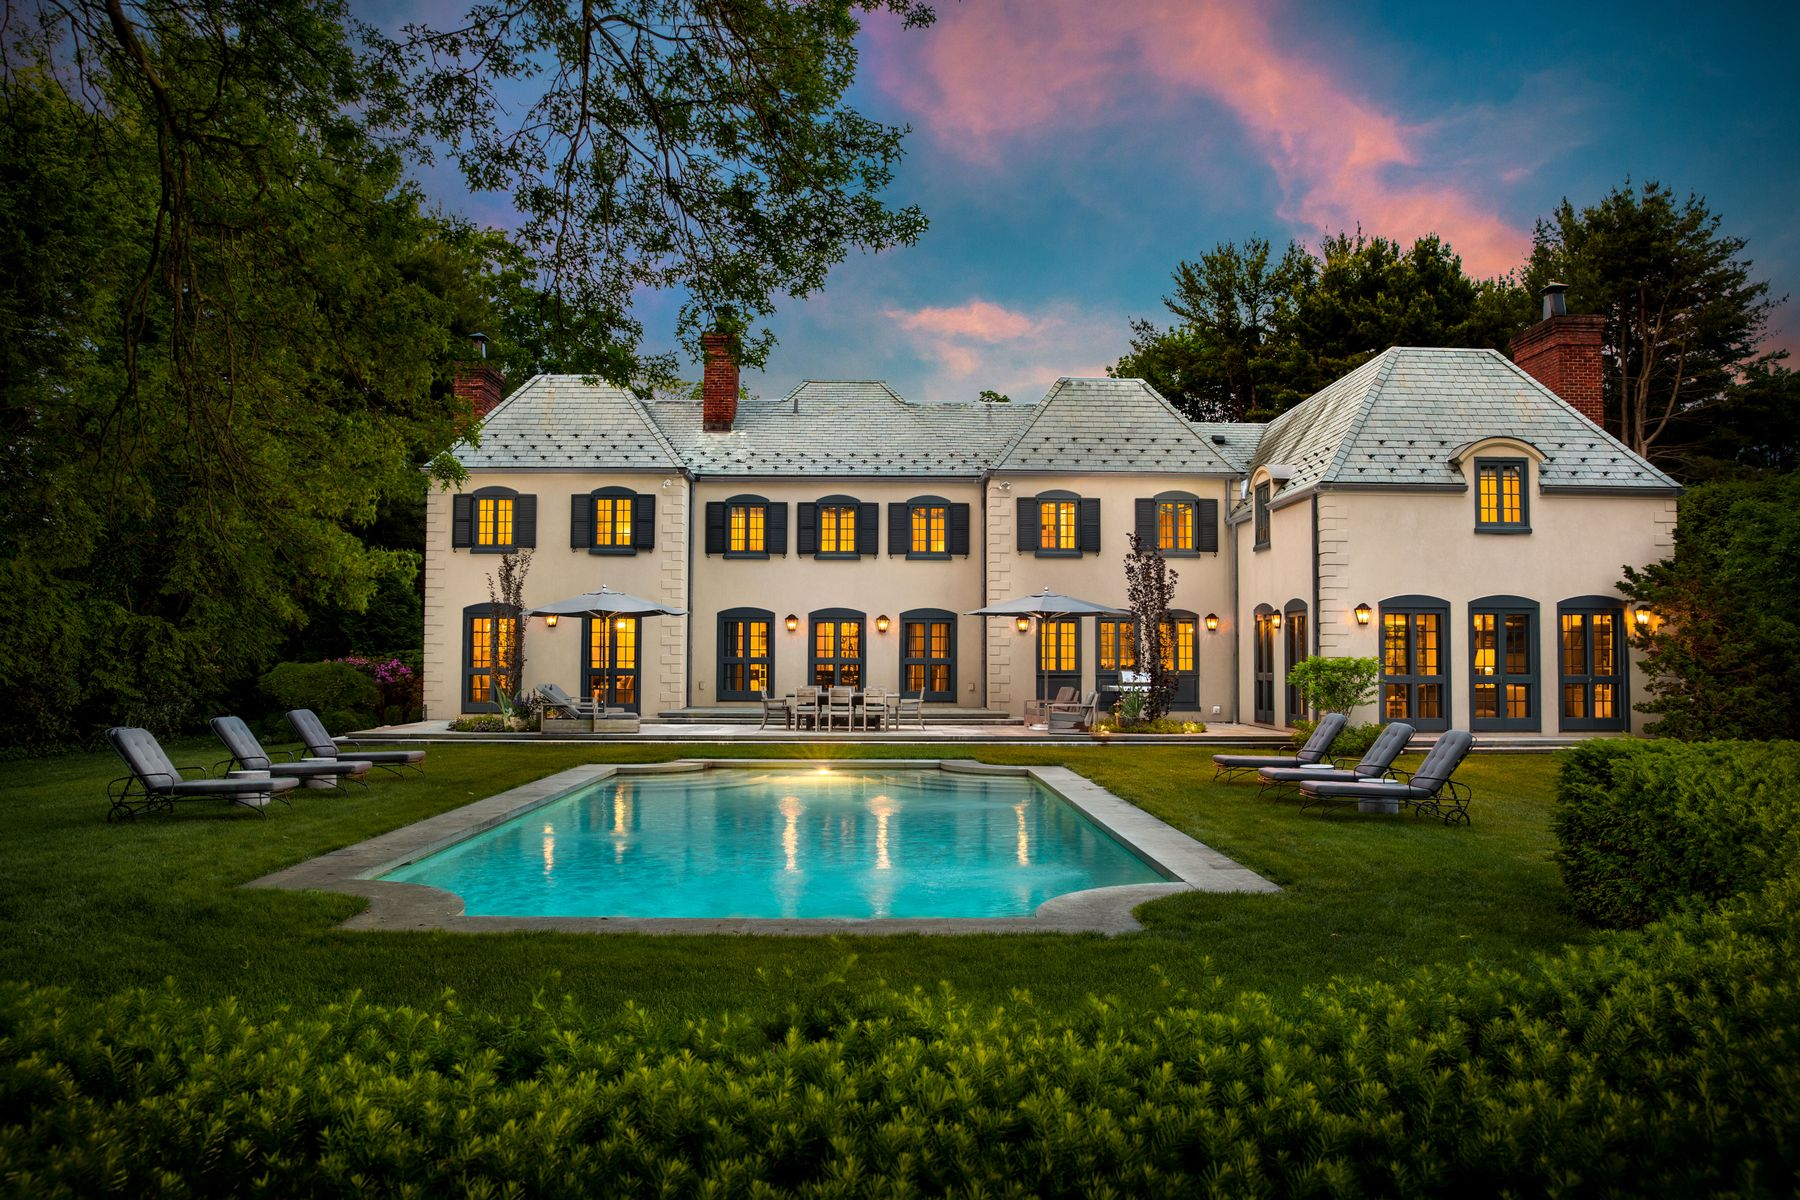 Single Family Homes for Sale at 266 Round Hill Road Greenwich, Connecticut 06831 United States